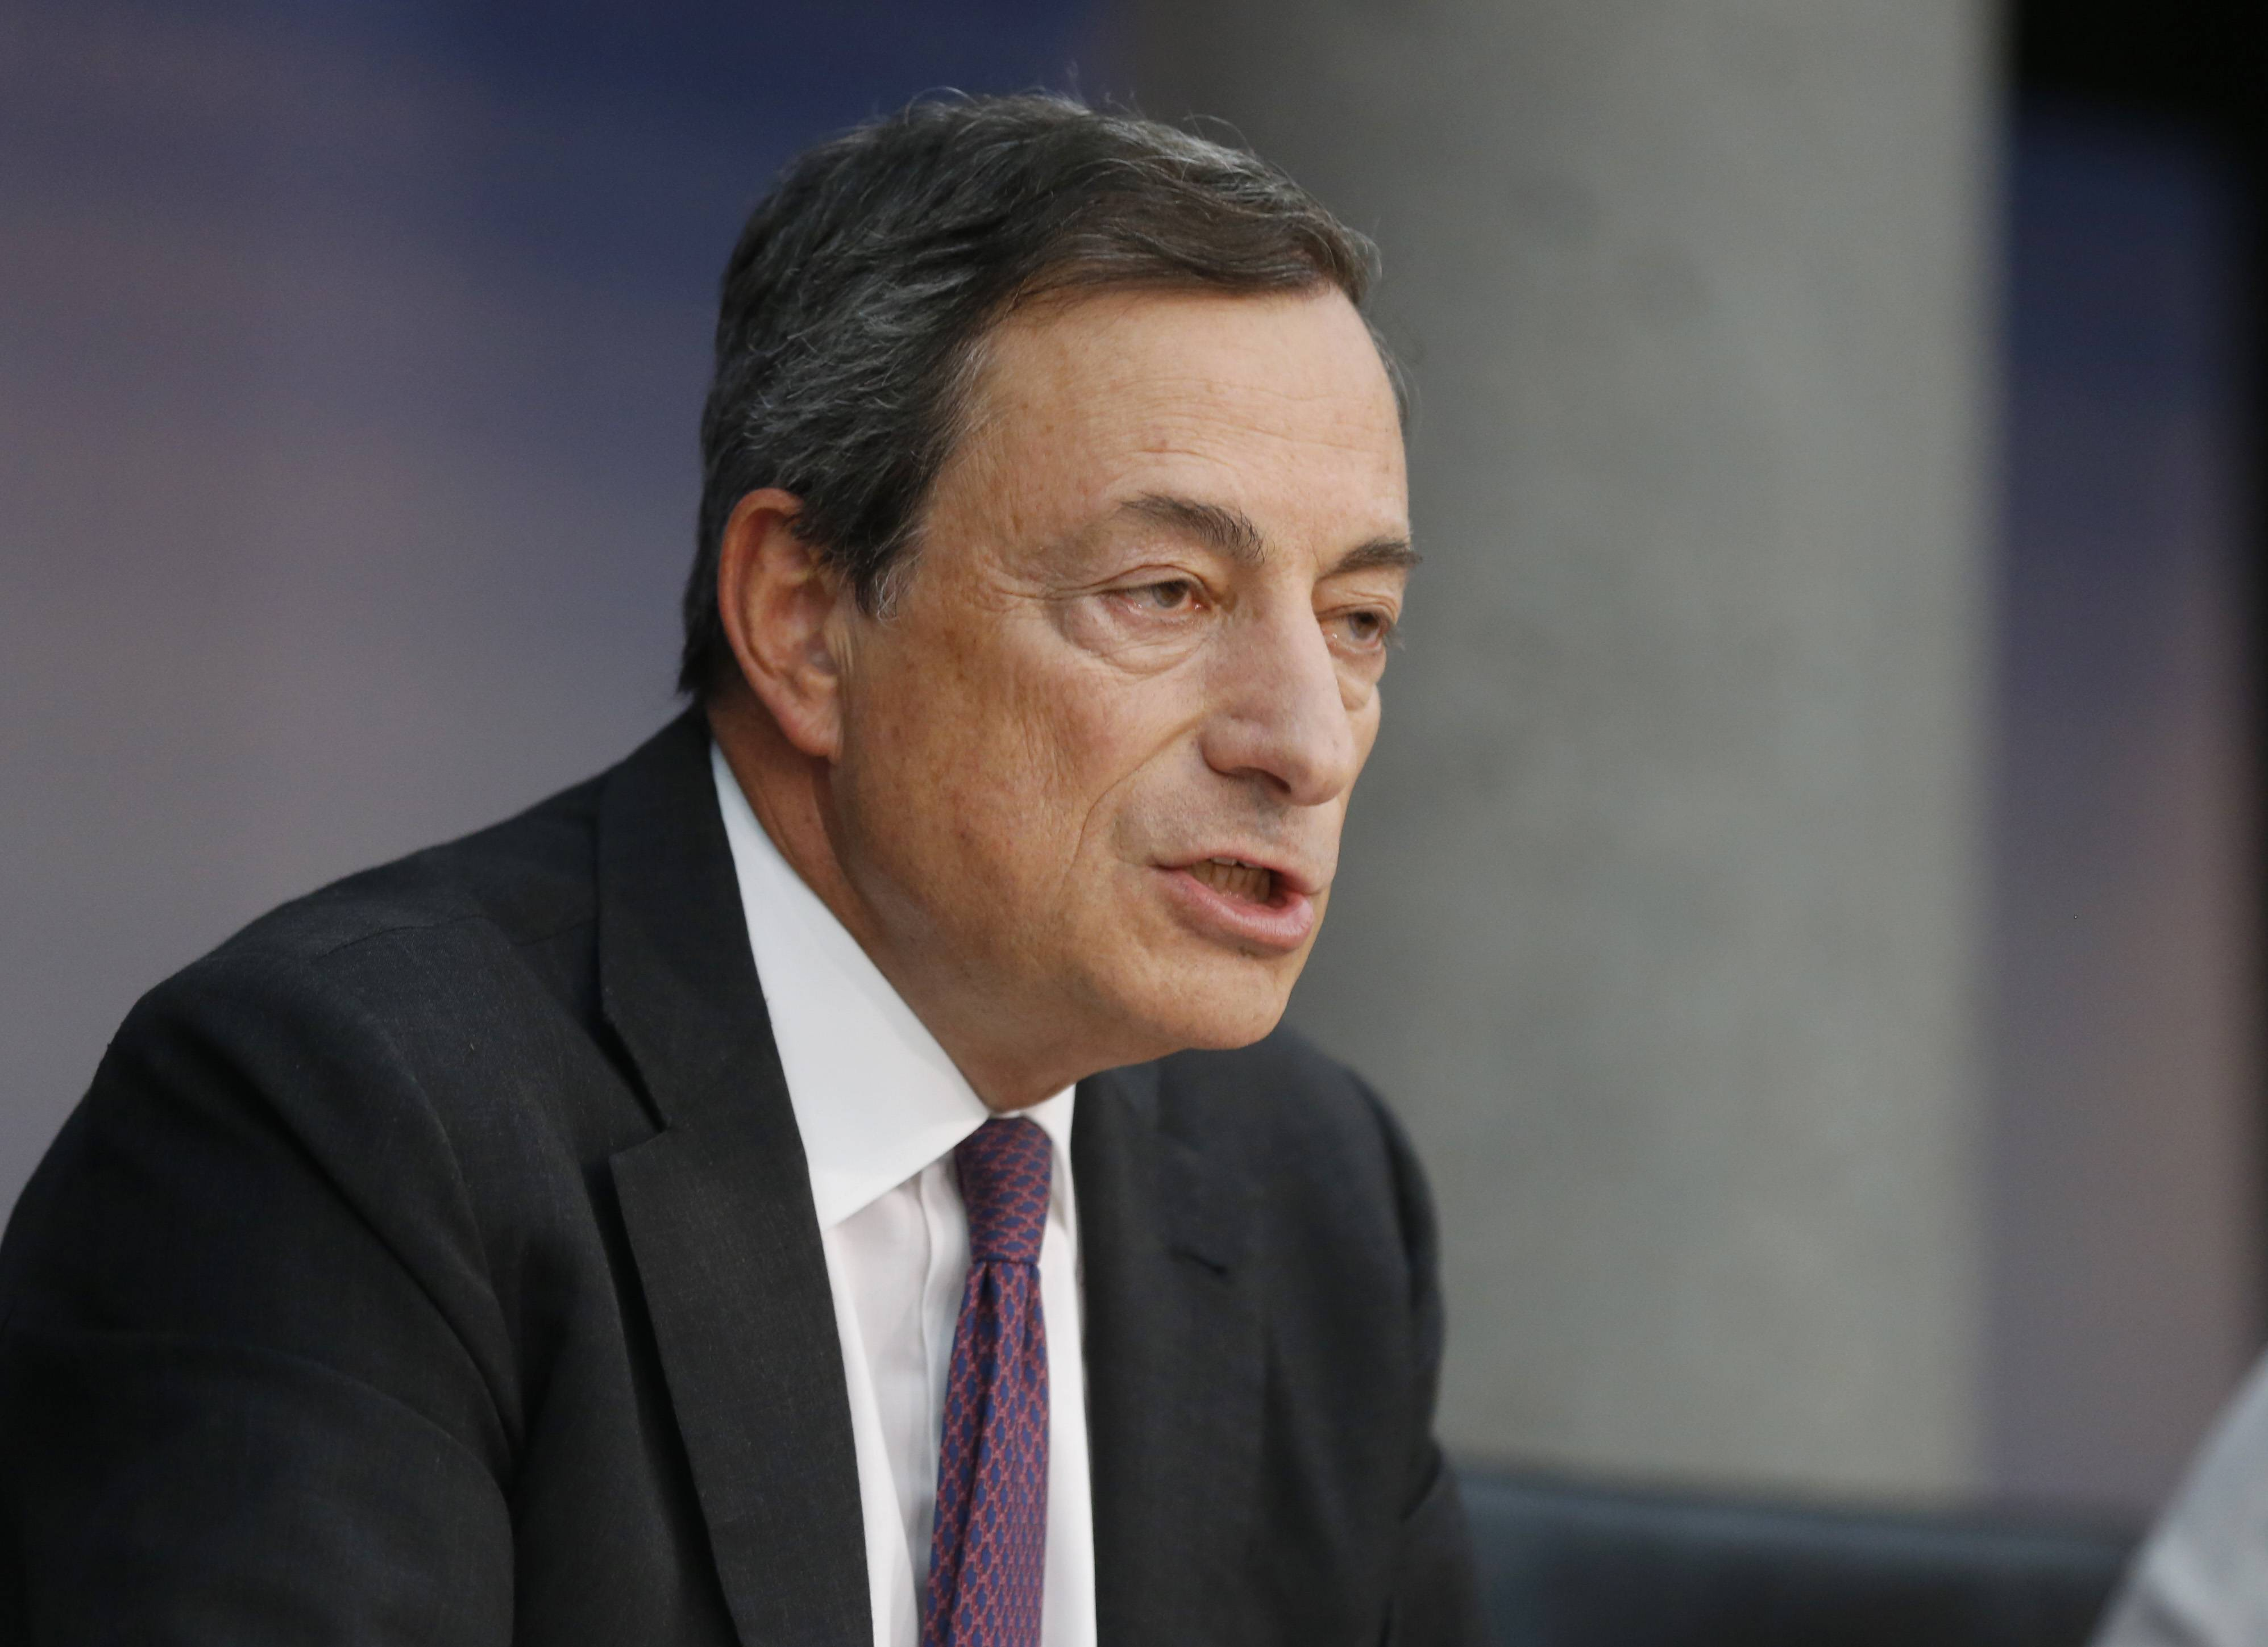 ECB surprises with rate cuts, new stimulus plan